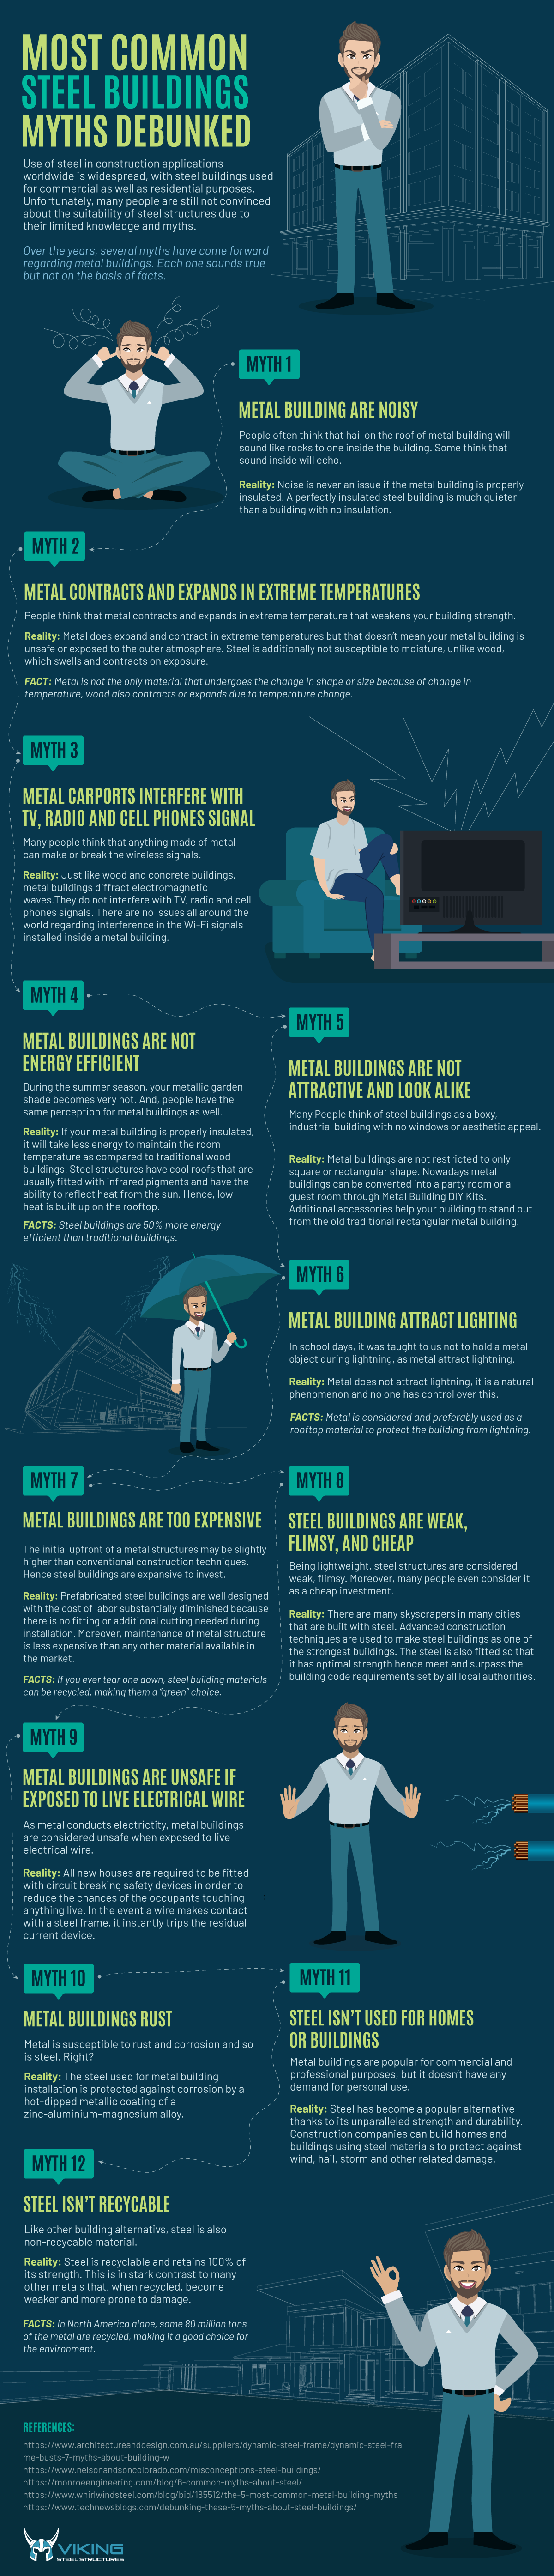 Most Common Steel Buildings Myths